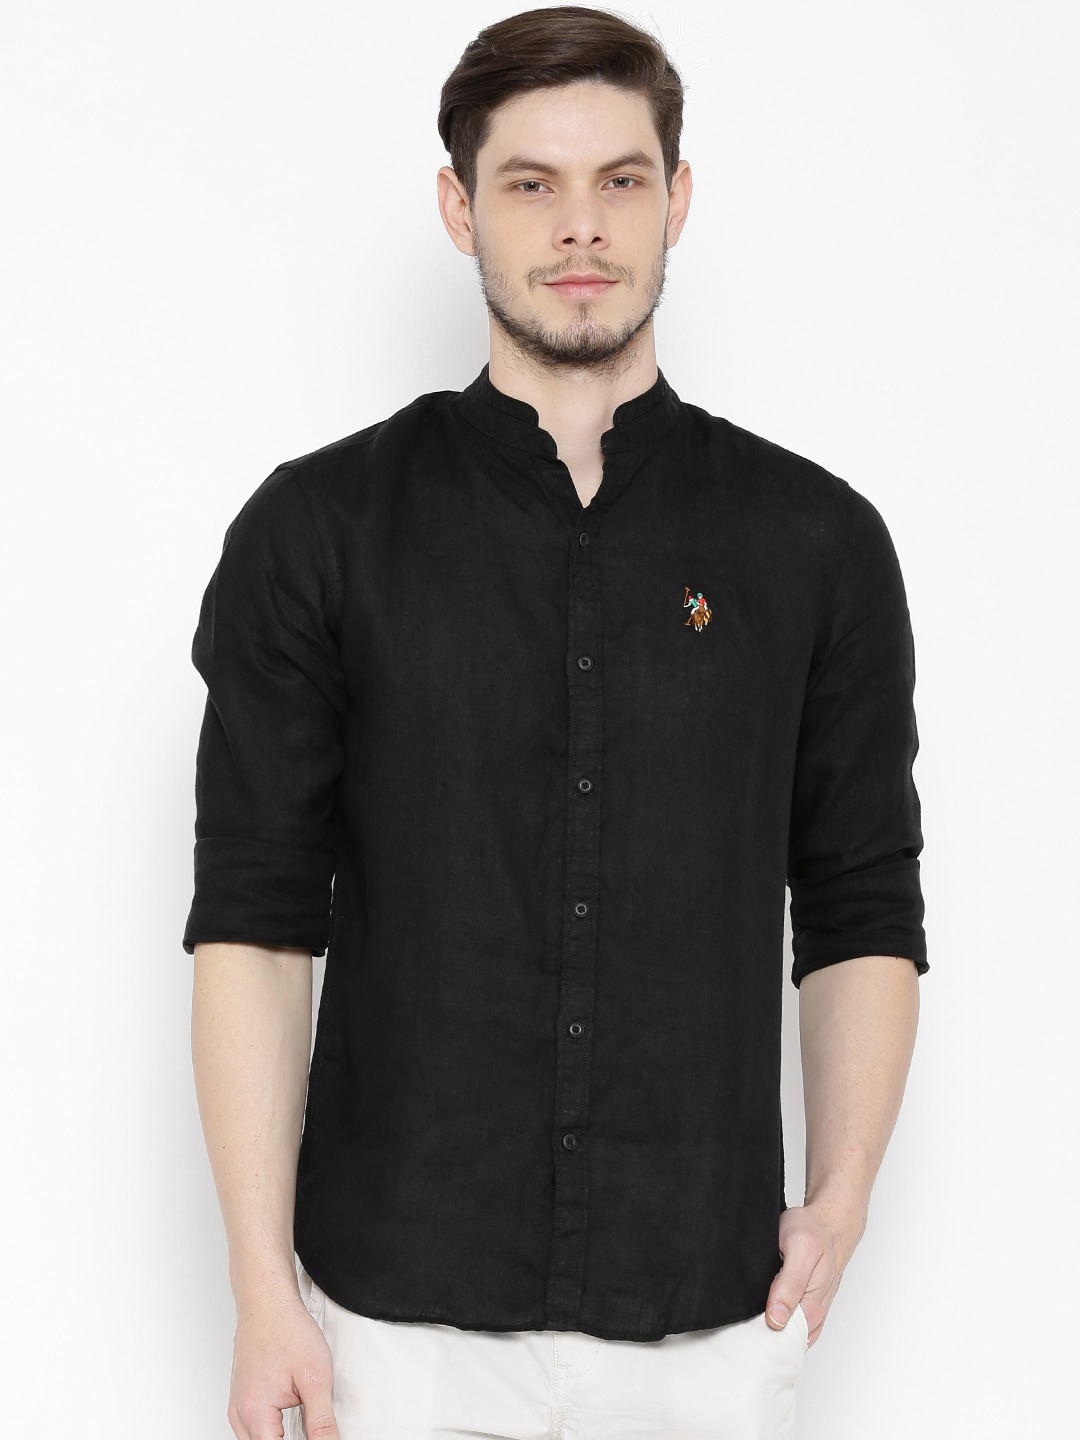 e4718557b Us polo assn ussh4205 Black Linen Casual Shirt - Best Price in India ...